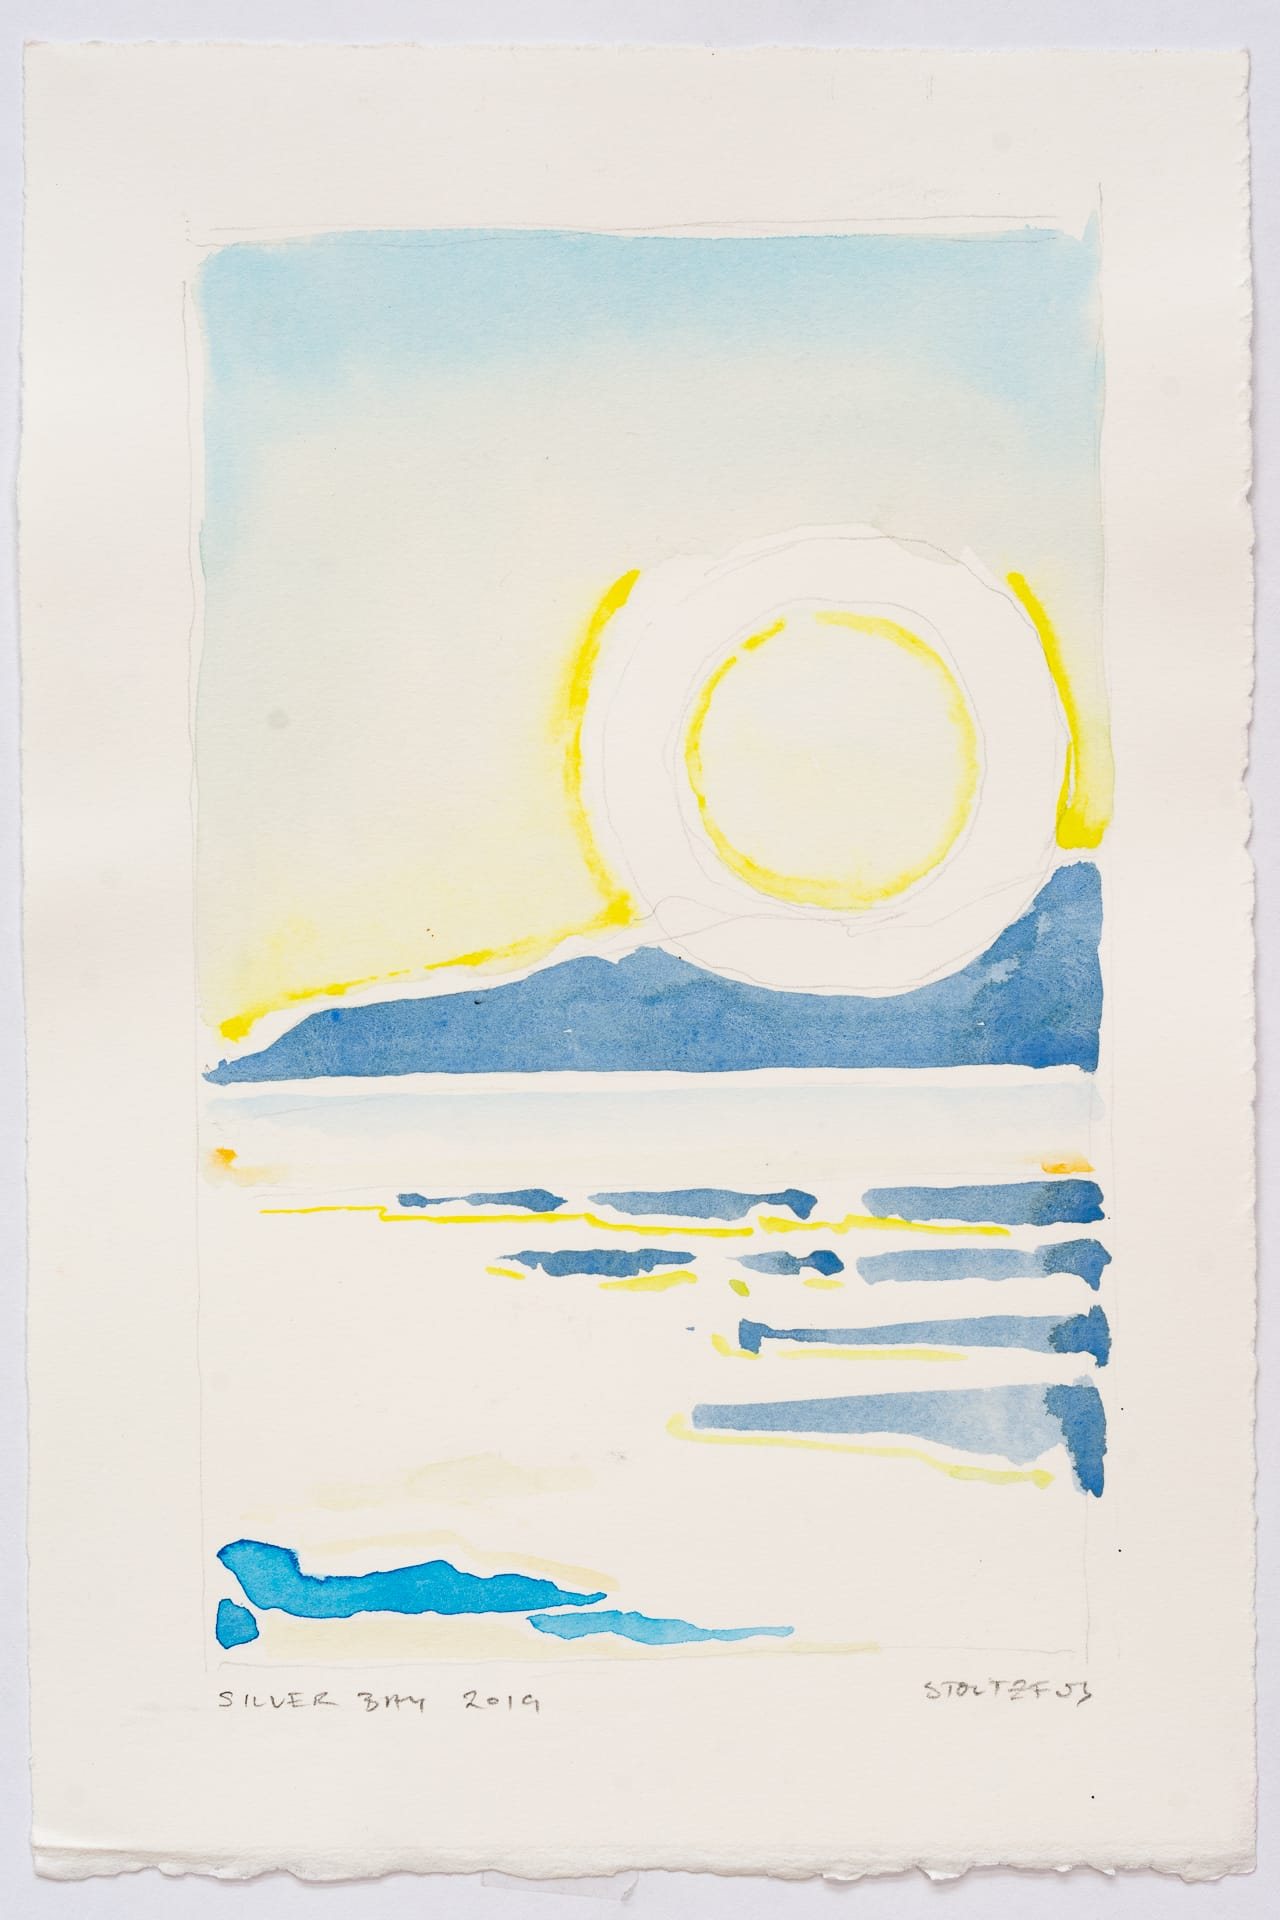 Sunrise over Silver Bay at Lake George, NY   Silver Bay 2019 S5 by Randall Stoltzfus   Watercolor on paper, 11 by 7.5 inches